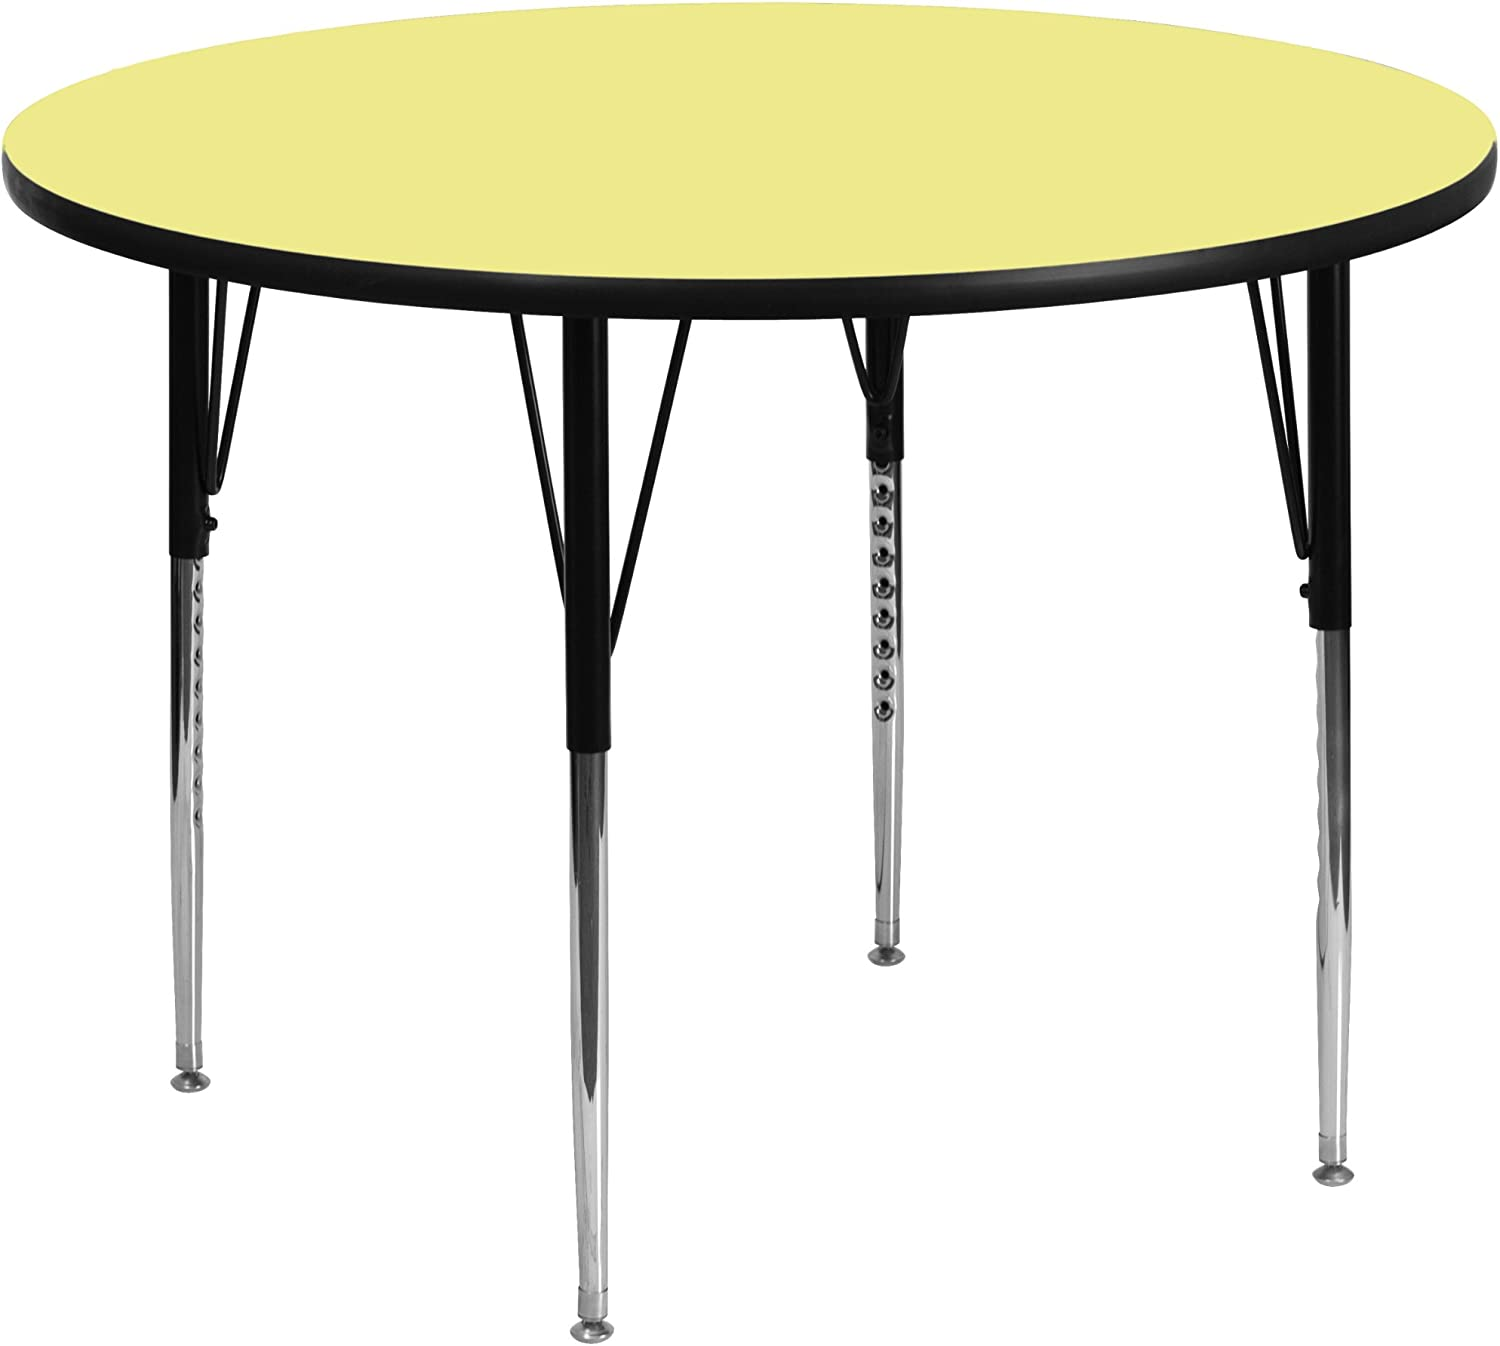 Flash Furniture 42'' Round Yellow Thermal Laminate Activity Table - Standard Height Adjustable Legs